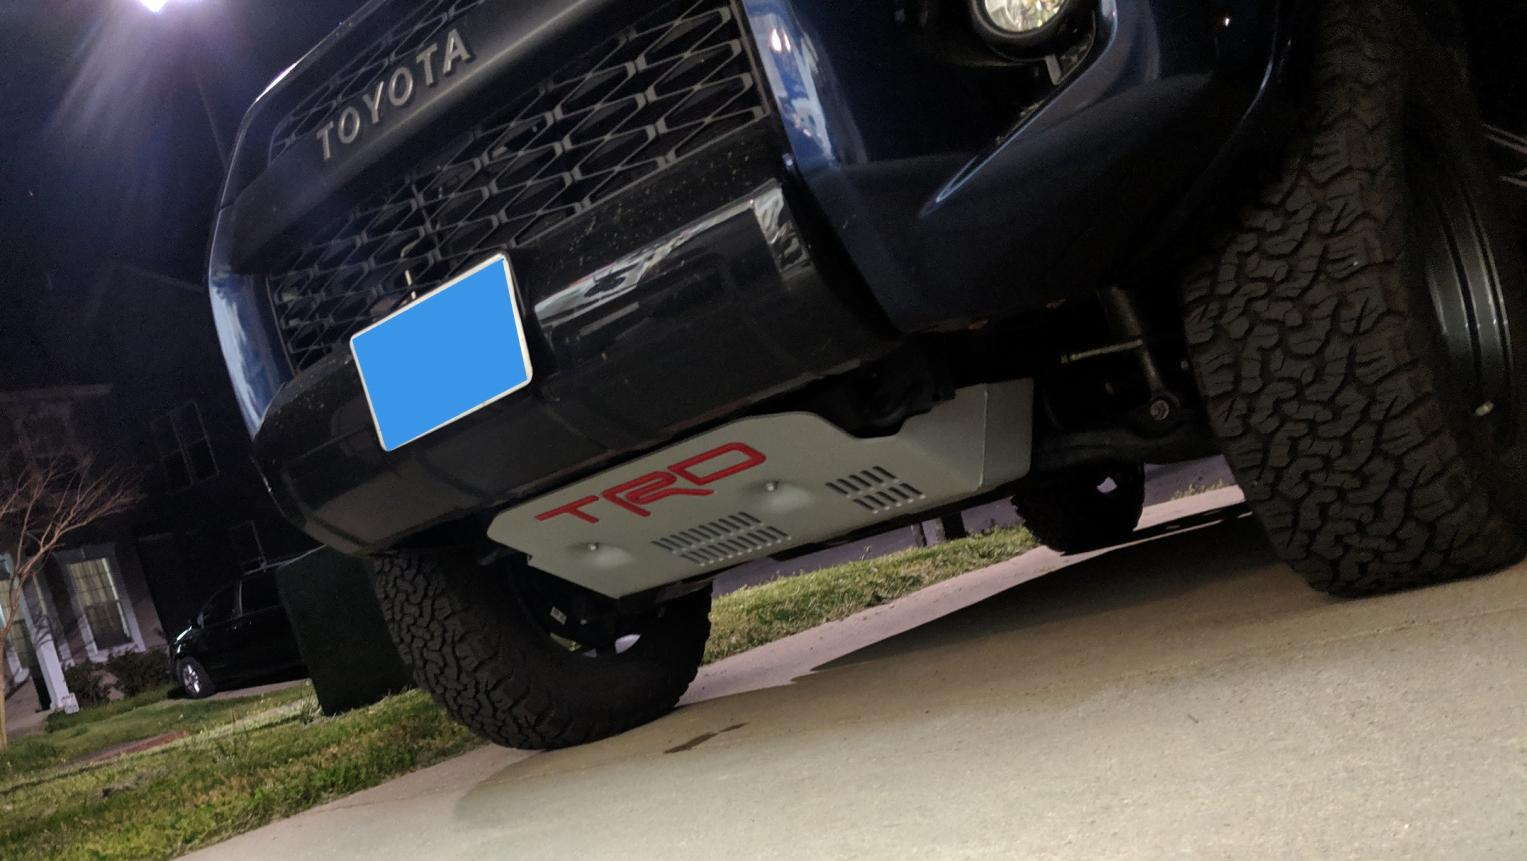 OEM TRD Parts 40 Percent Off Sale One Day Only-img_20190418_205020-jpg